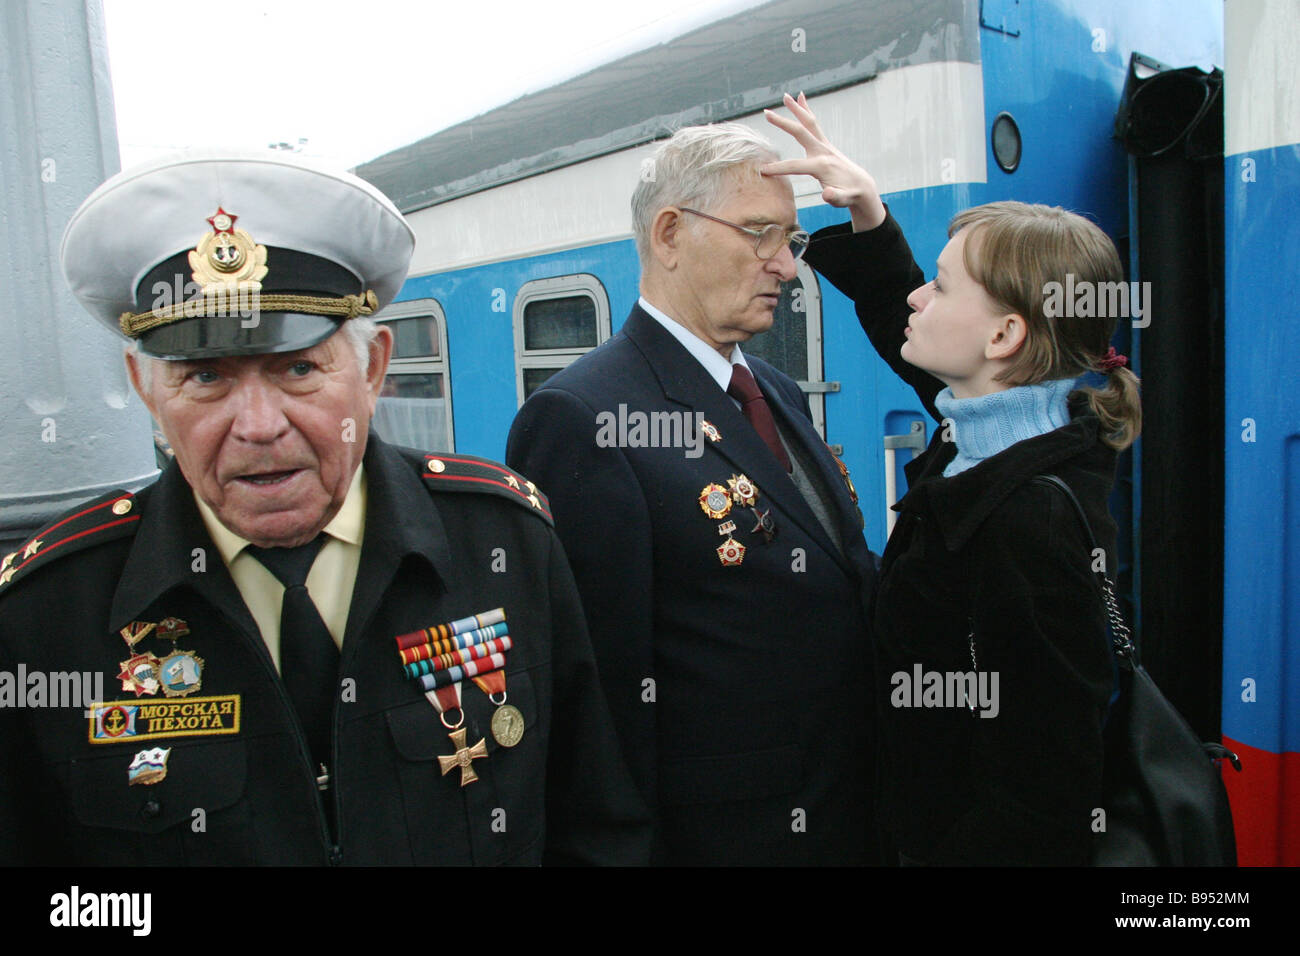 Veterans of the Great Patriotic War 1941 1945 Colonel Igor Sedyshev left and Captain Mikhail Zakharov with his granddaughter - Stock Image